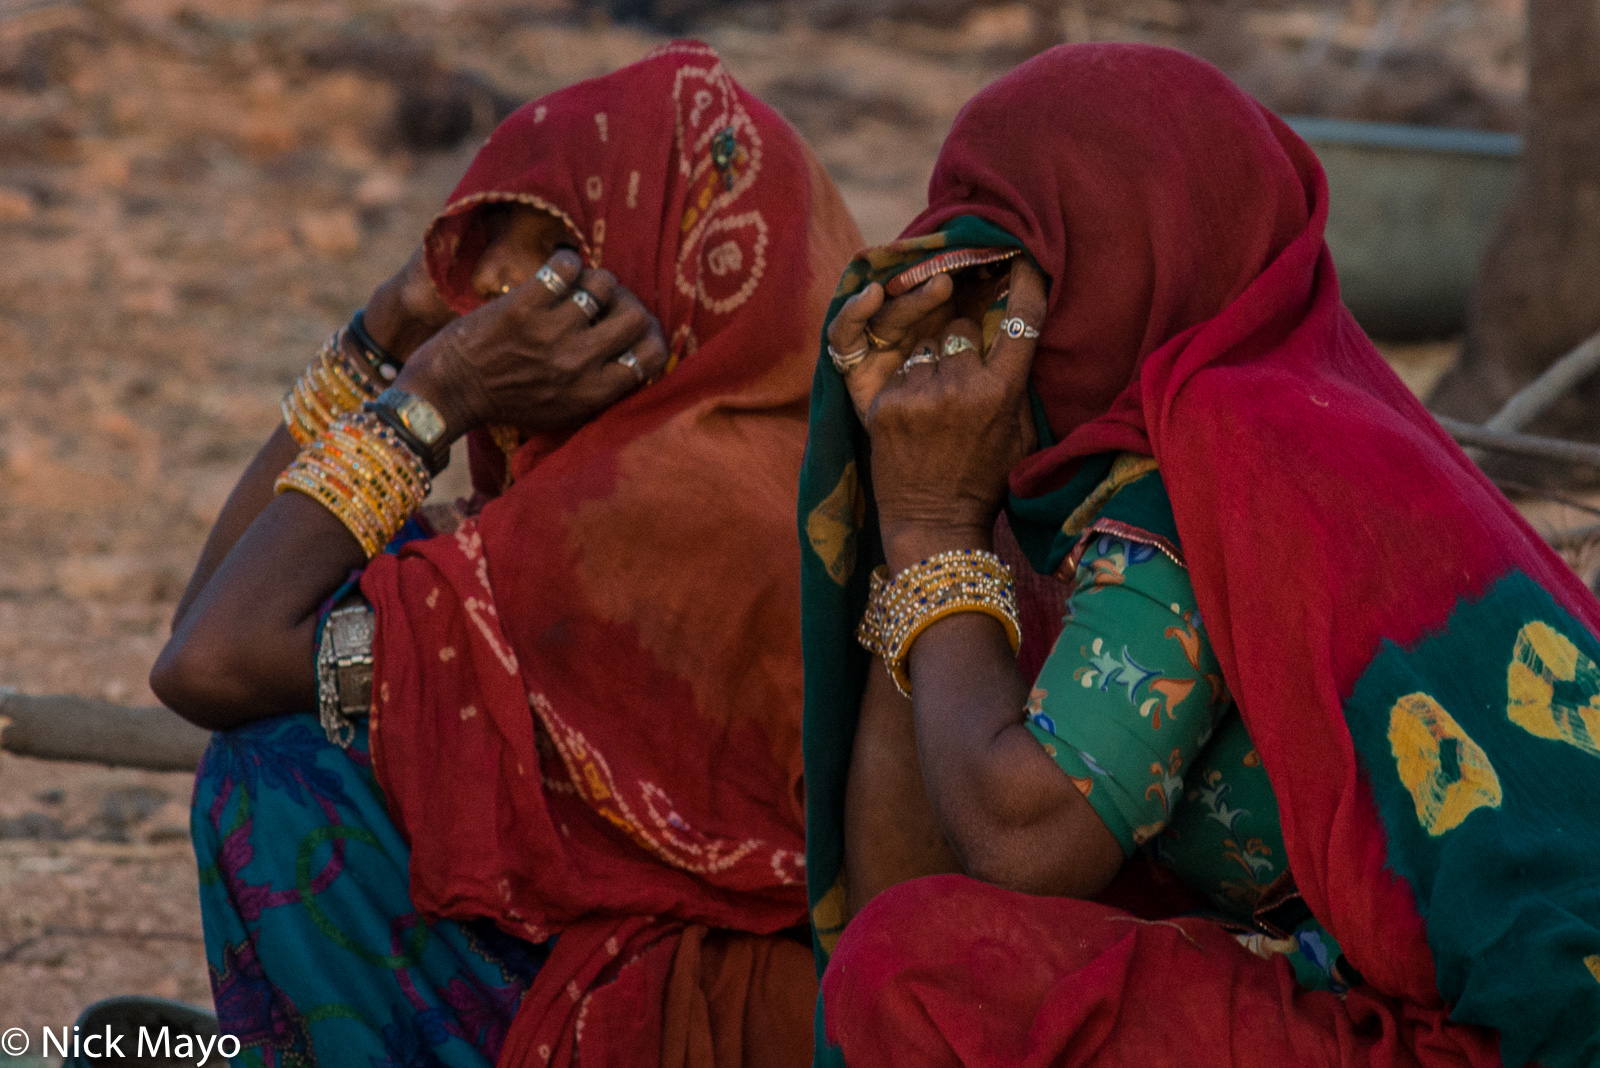 Festival, India, Rajasthan, photo